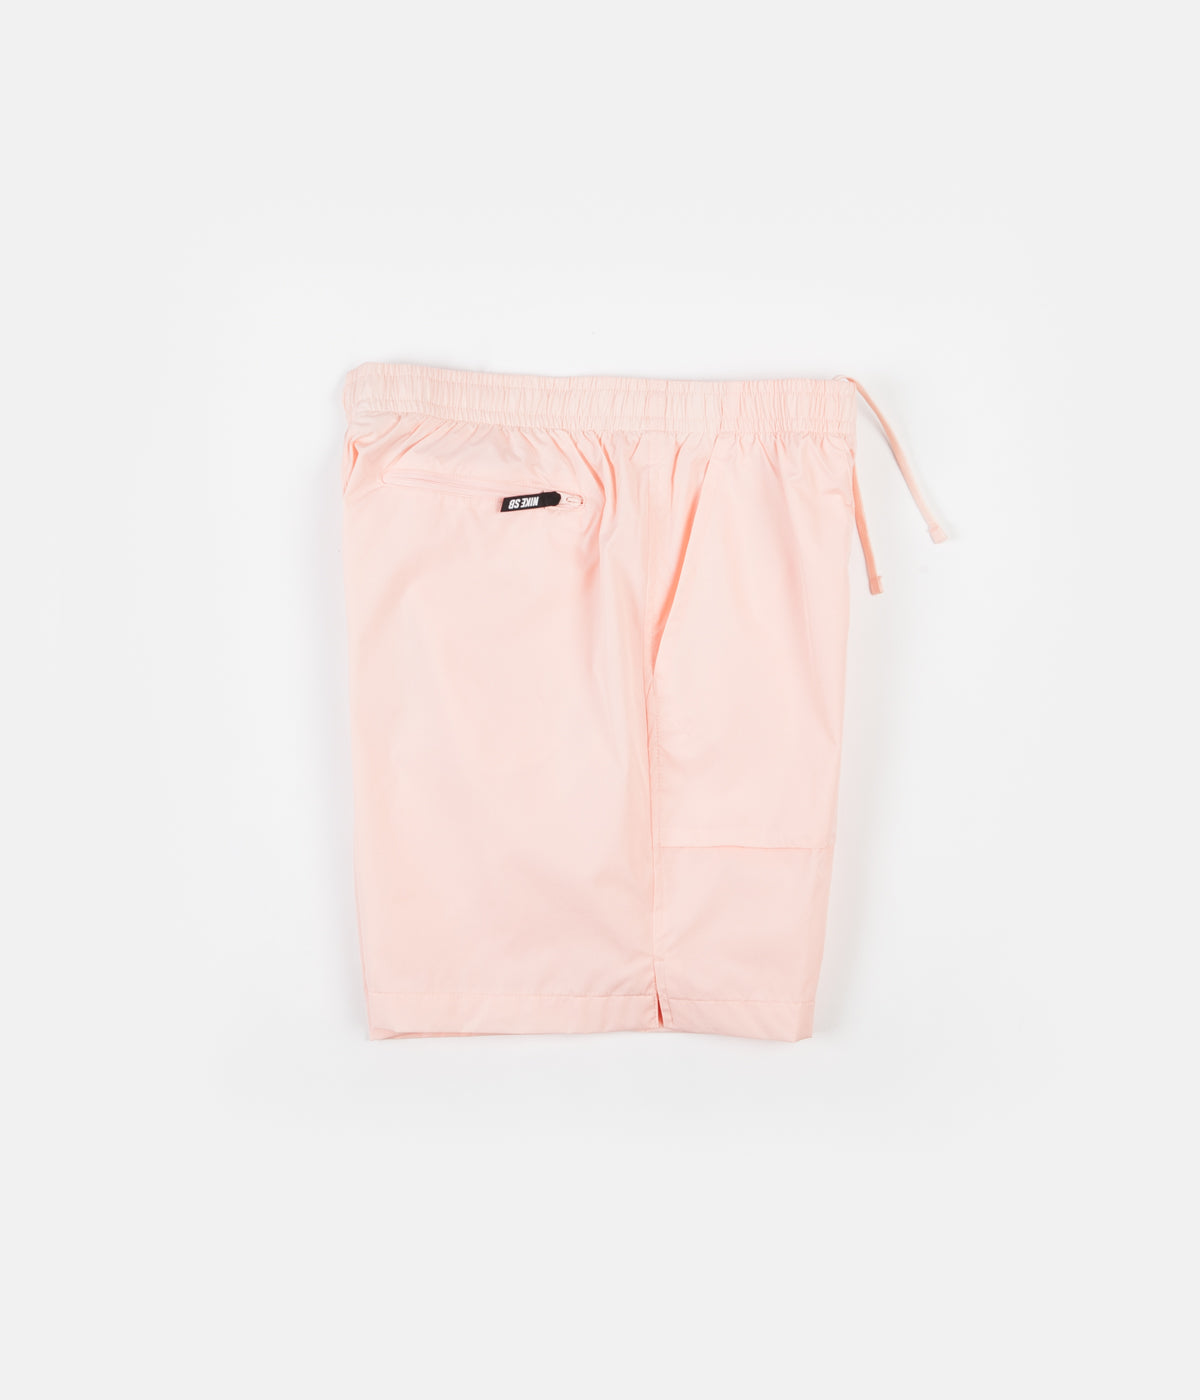 Nike SB Water Shorts - Washed Coral